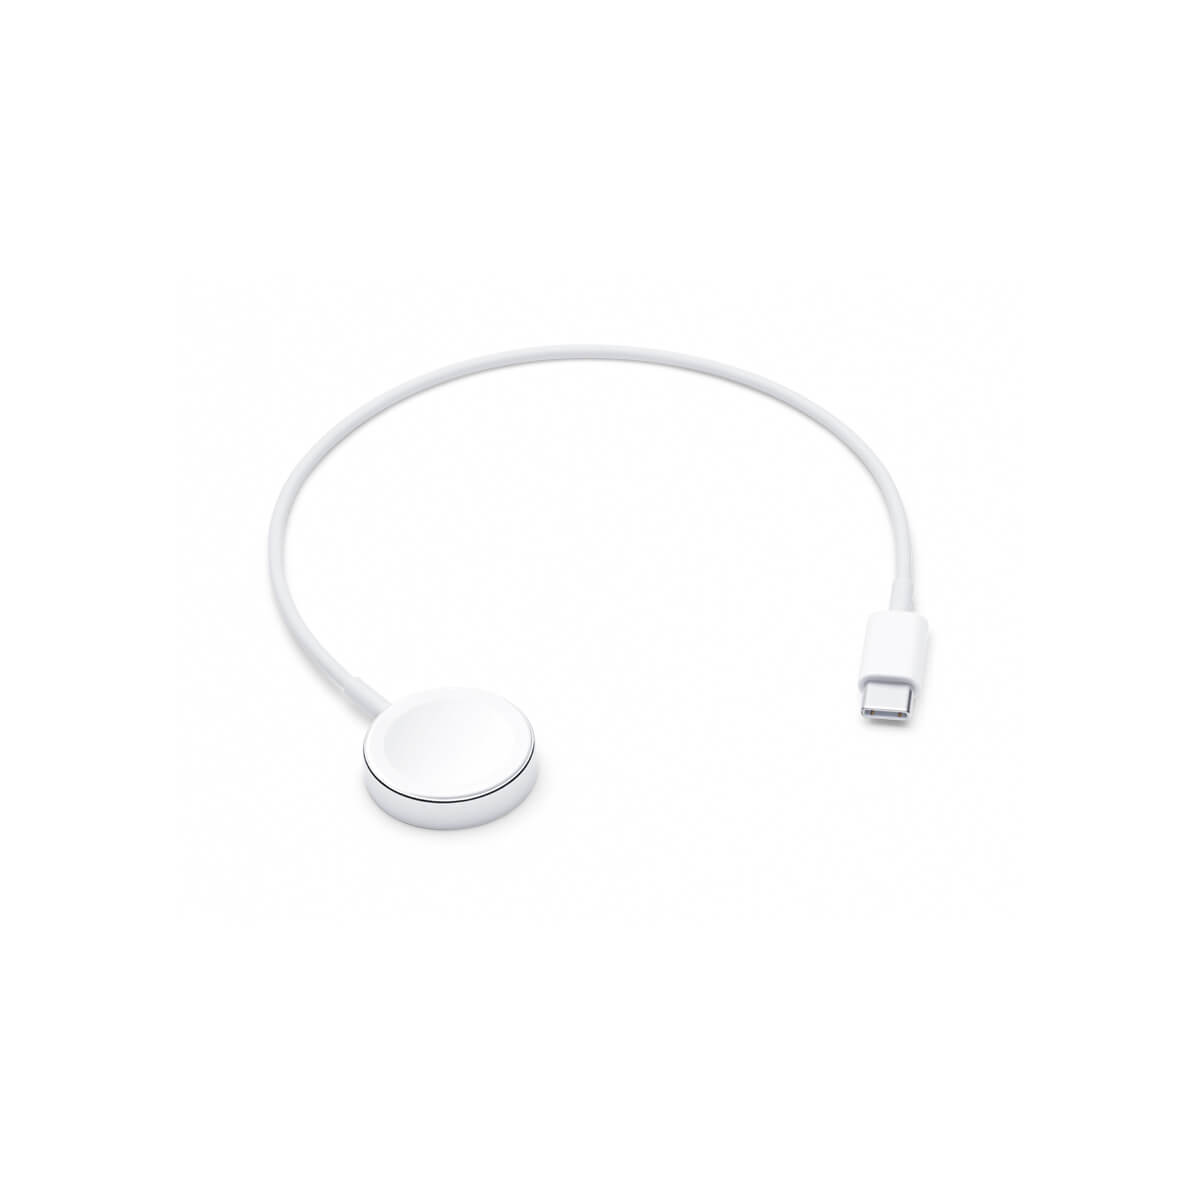 APPLE WATCH MAGNETISK LADEKABEL 2 M Power.no